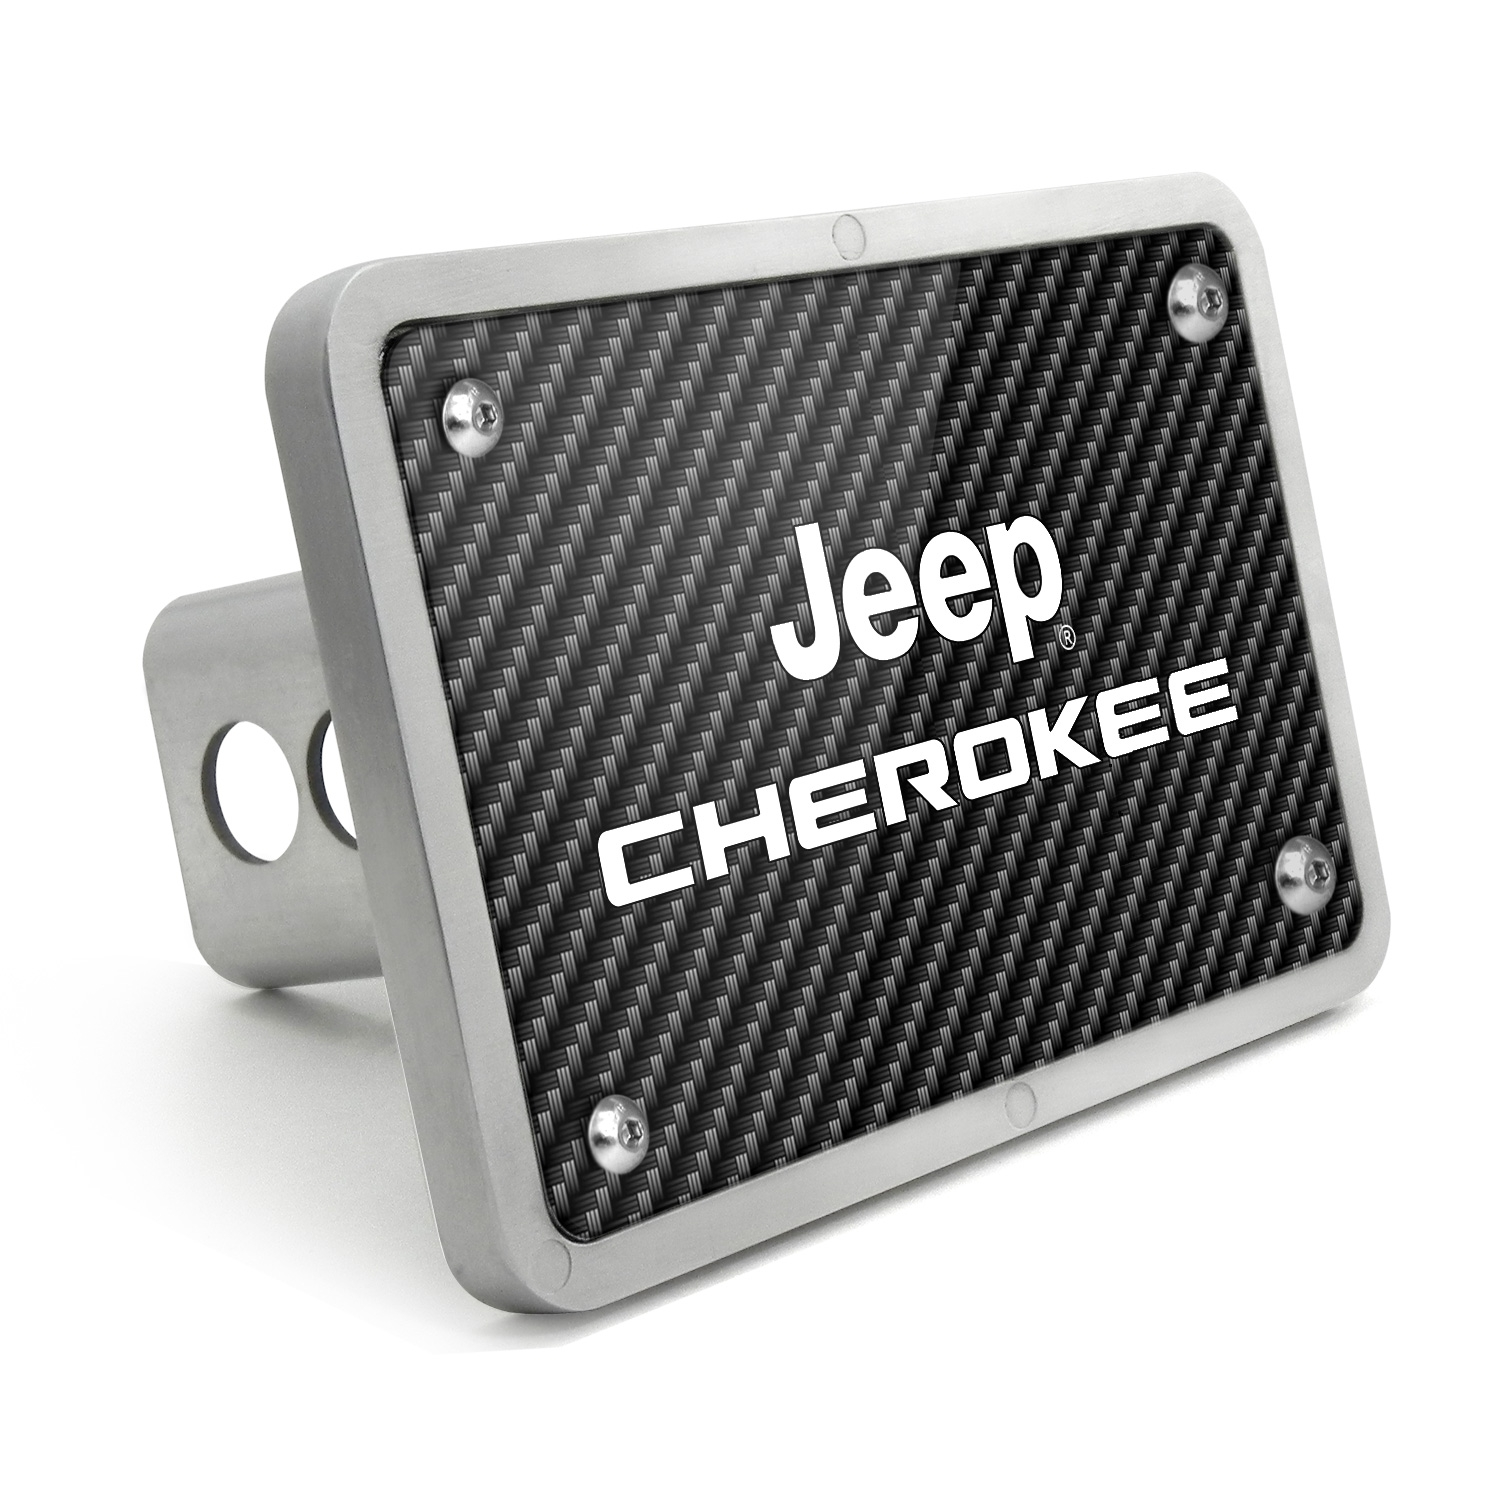 Jeep Cherokee UV Graphic Carbon Fiber Texture Billet Aluminum 2 inch Tow Hitch Cover